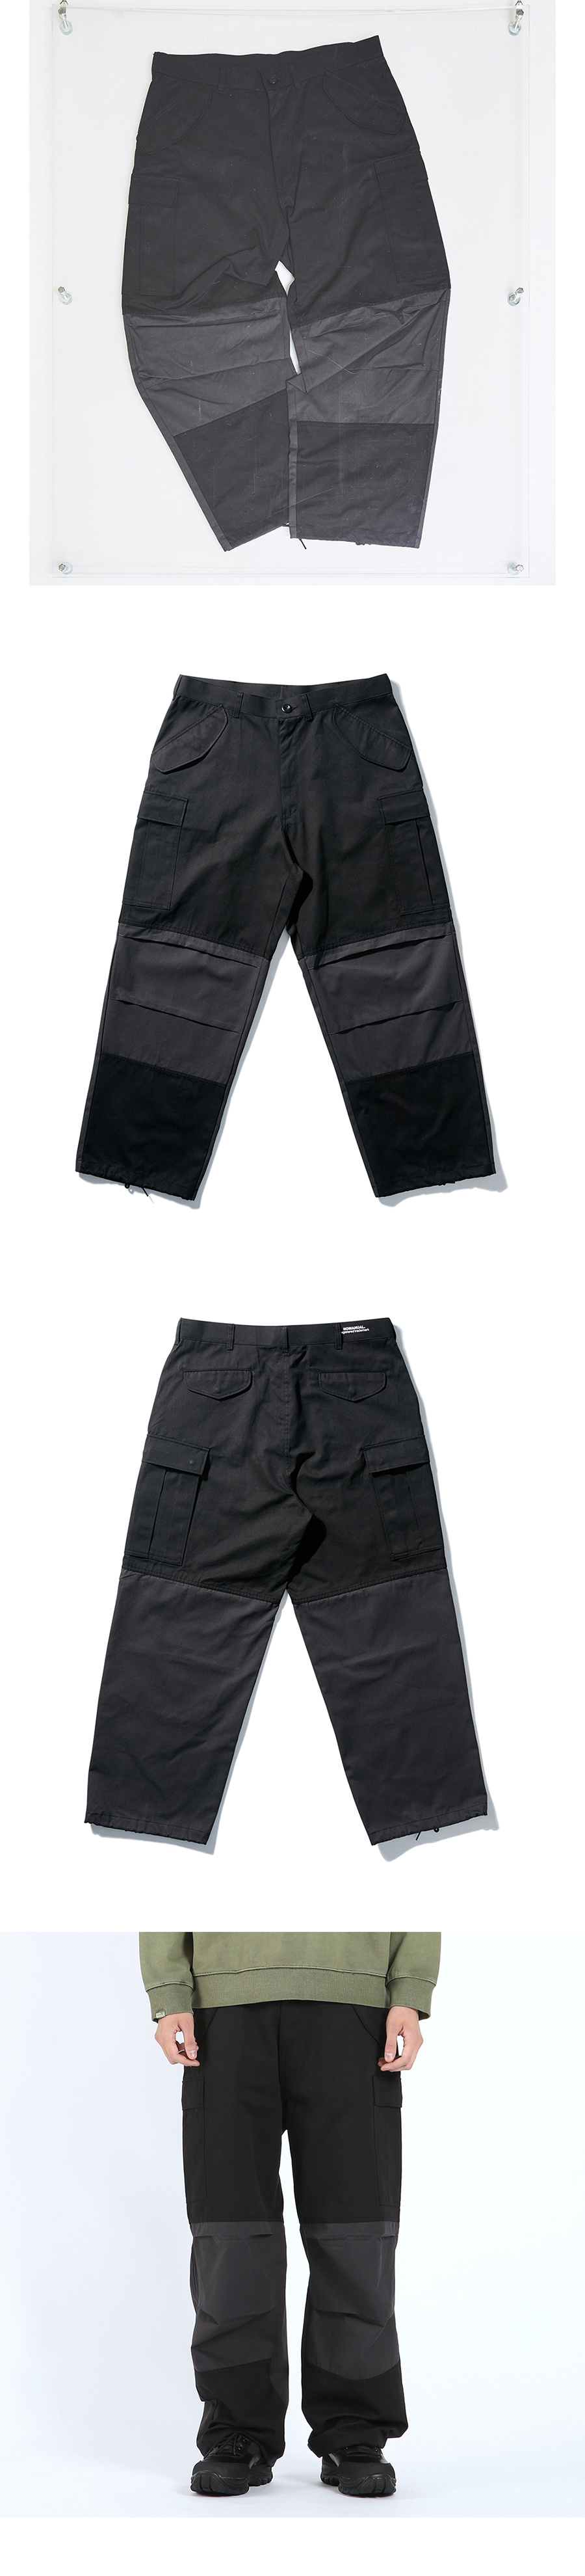 노매뉴얼(NOMANUAL) K.N CARGO PANTS - BLACK